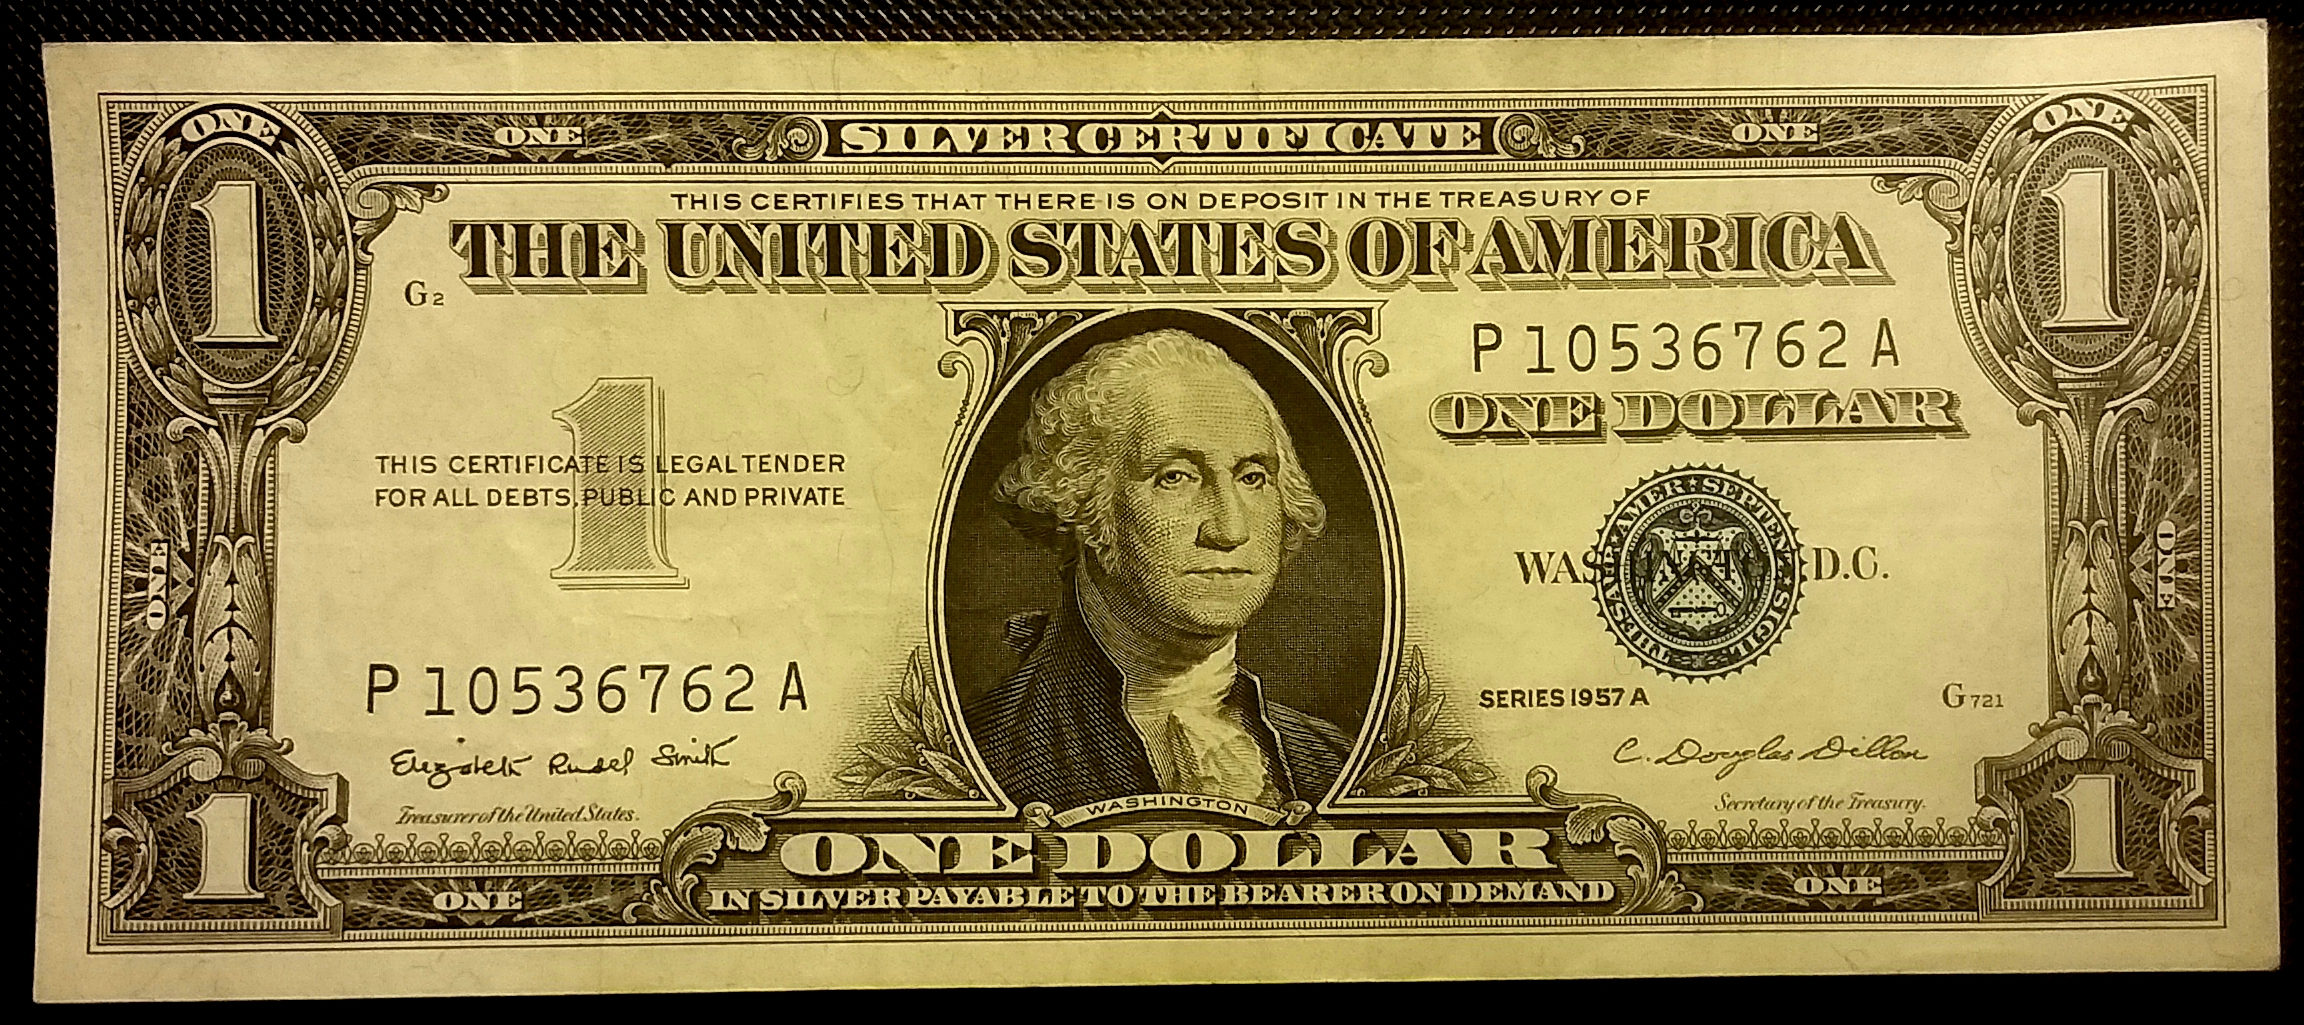 Vintage 1957a Higher Grade Silver Certificate One Dollar Bill Etsy